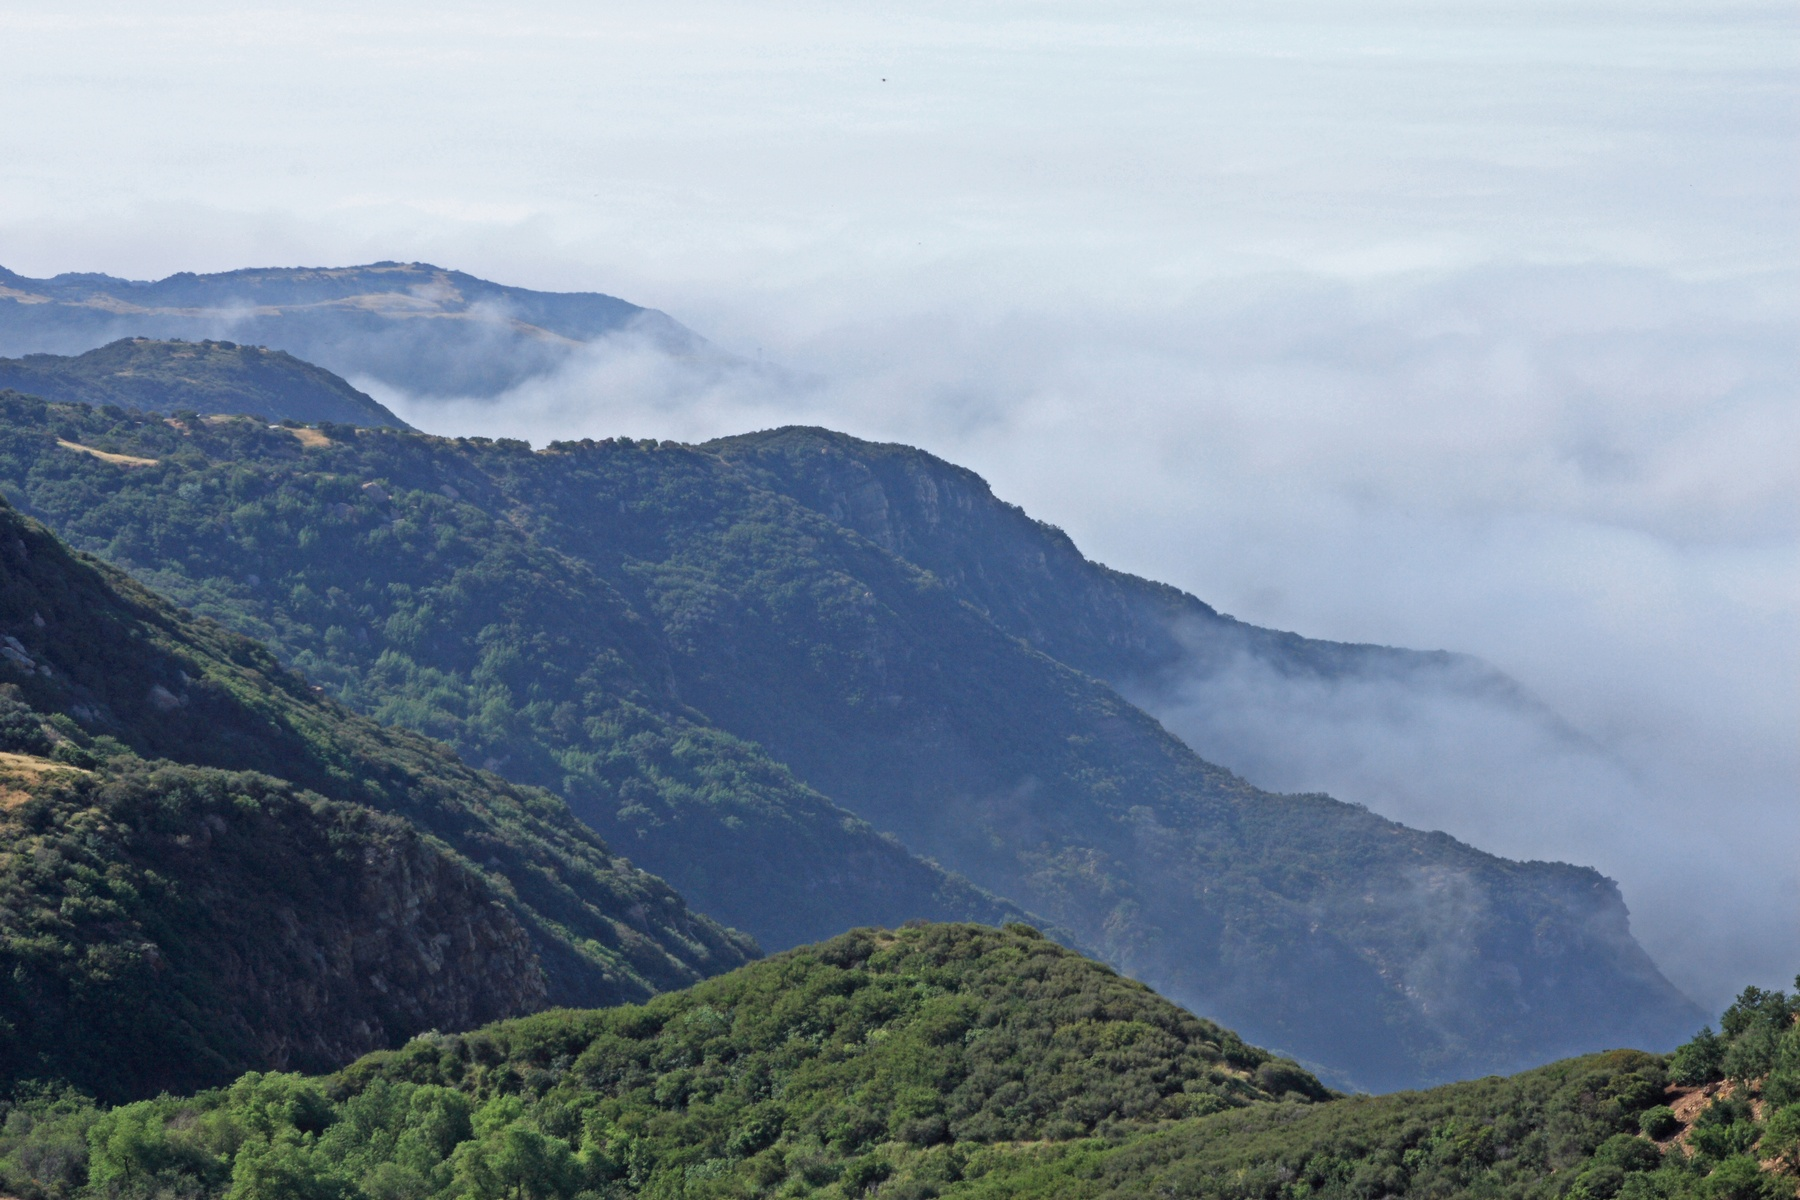 The Backbone Trail can provide views of green mountains high above costal fog.